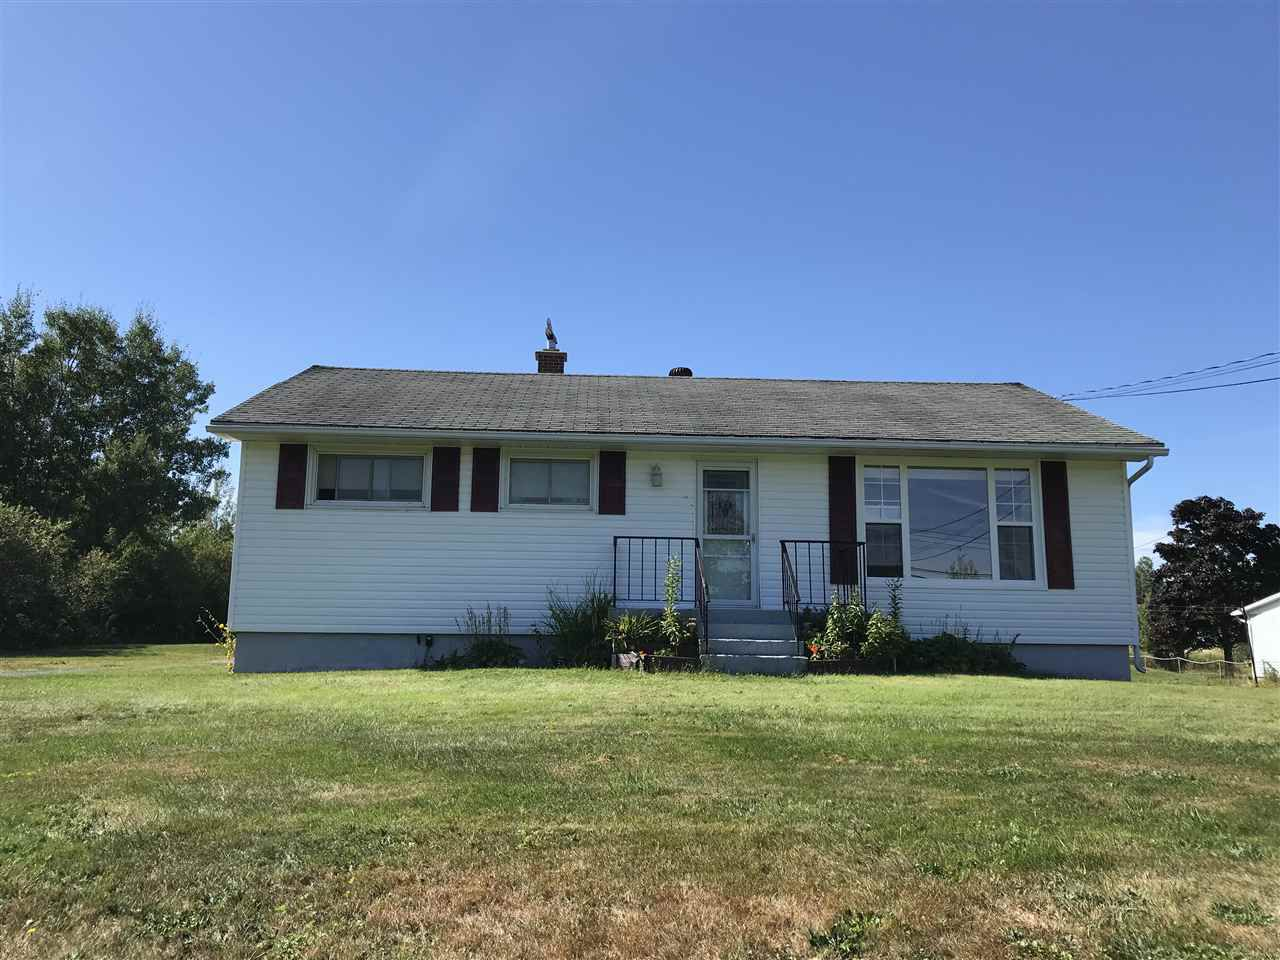 Main Photo: 1664 Office Street in Westville: 107-Trenton,Westville,Pictou Residential for sale (Northern Region)  : MLS®# 201902636